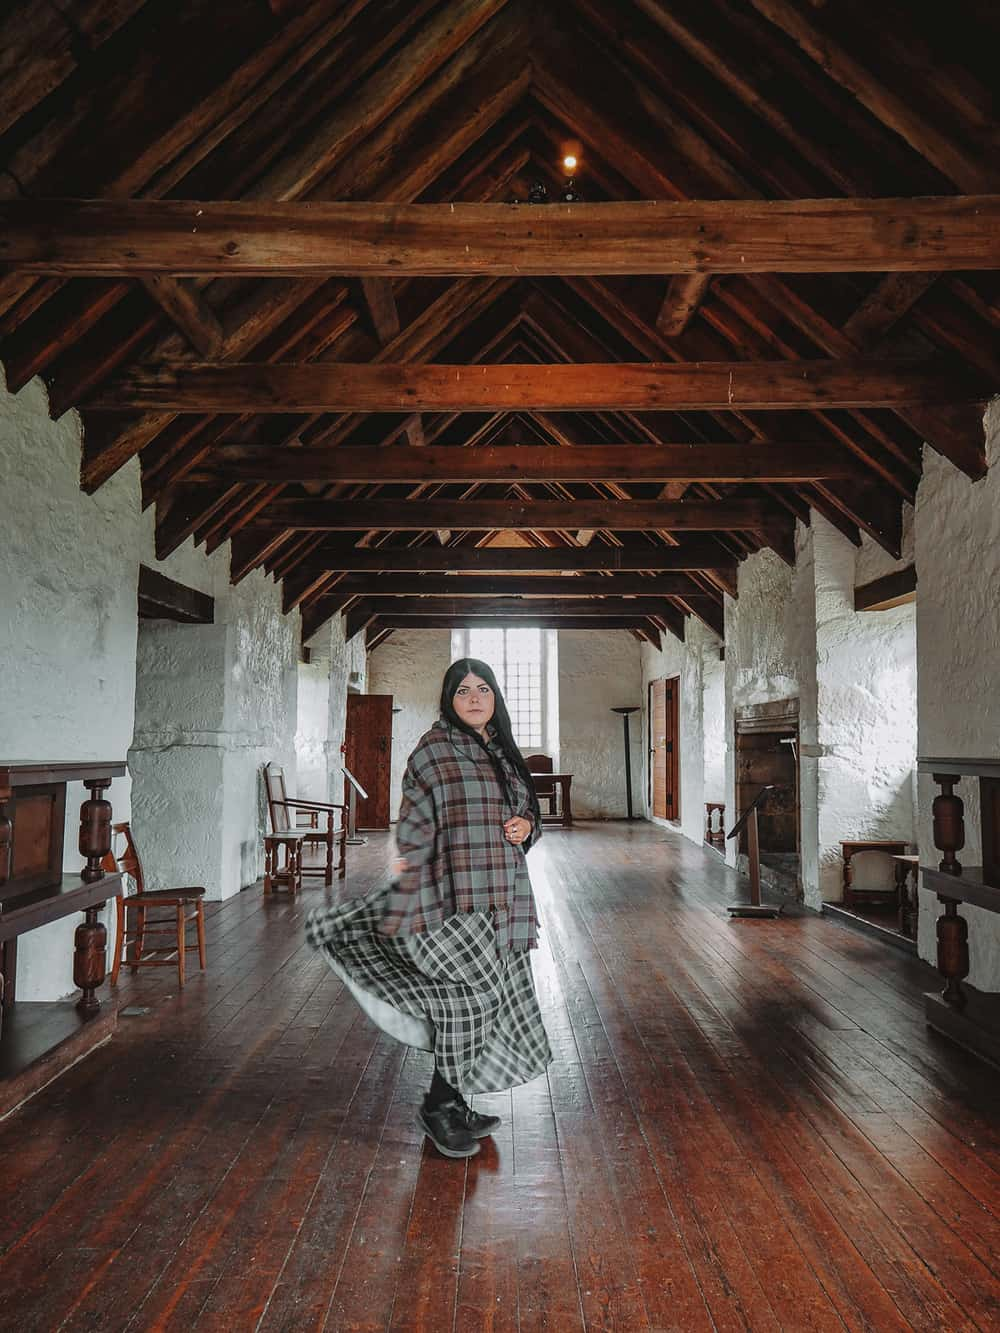 Aberdour Castle Gallery Outlander location